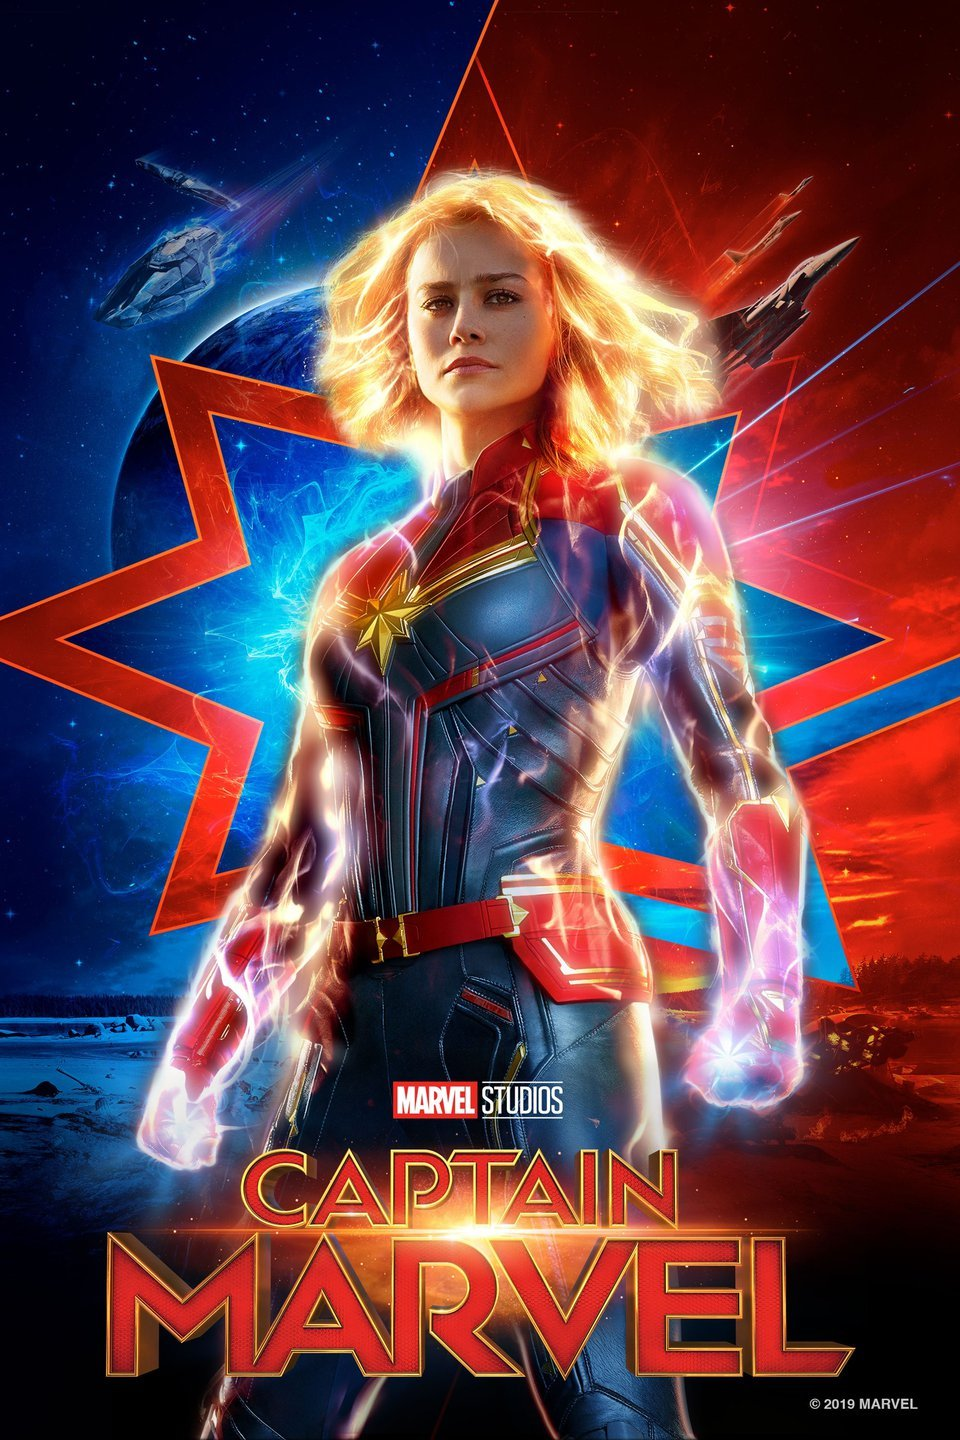 Being the first female-led superhero movie in the Marvel Cinematic Universe, Captain Marvel brings the power behind the punch. Captain Marvel appeared in theaters March 8.